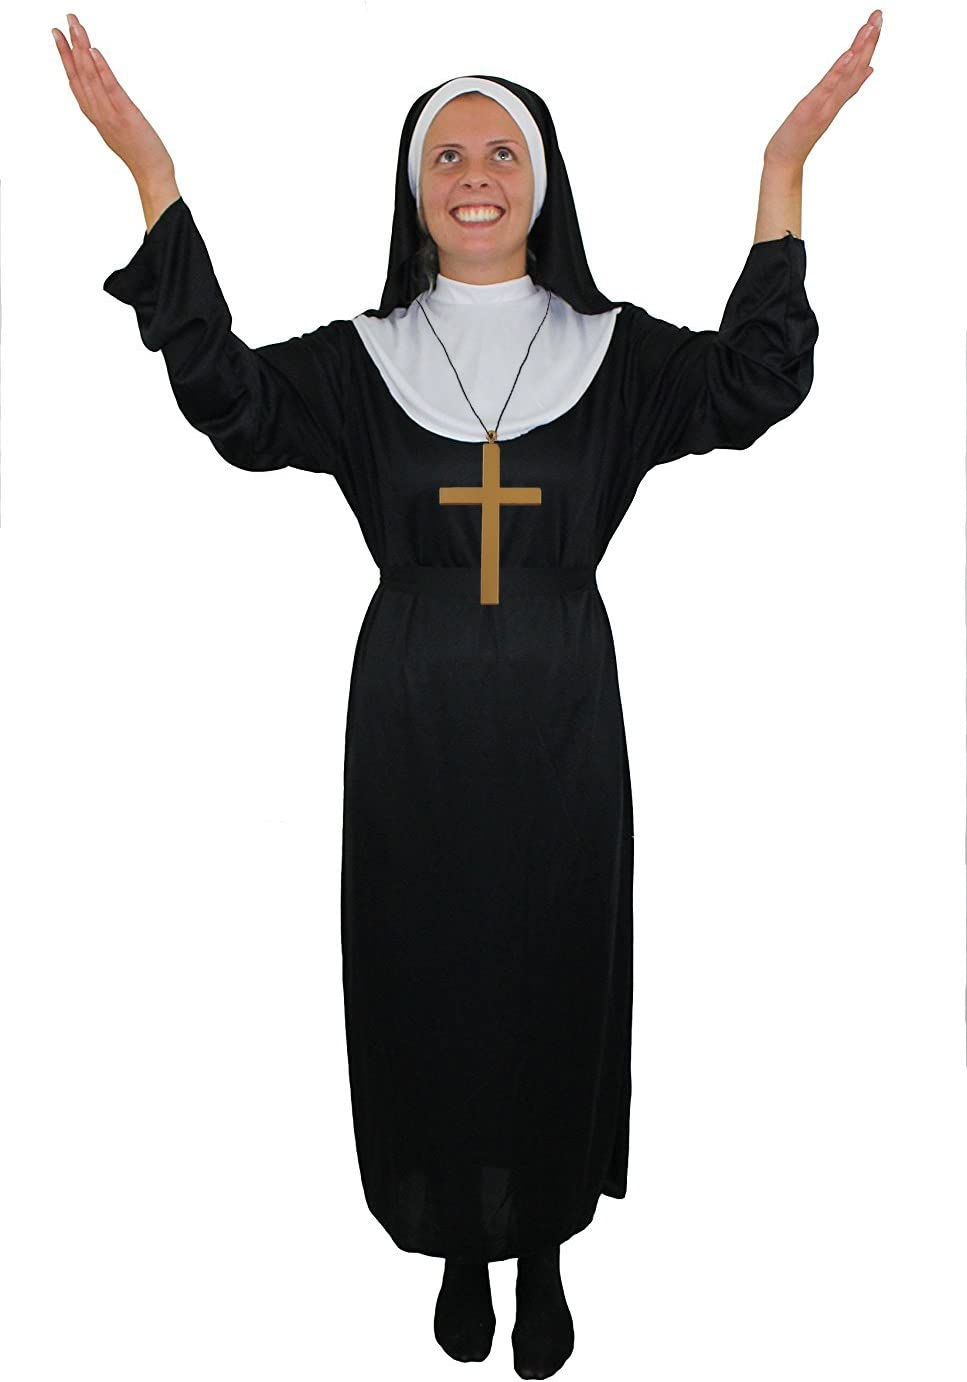 PREGNANT NUN COSTUME NOVELTY MENS WOMENS FANCY DRESS UNISEX RELIGIOUS OUTFIT